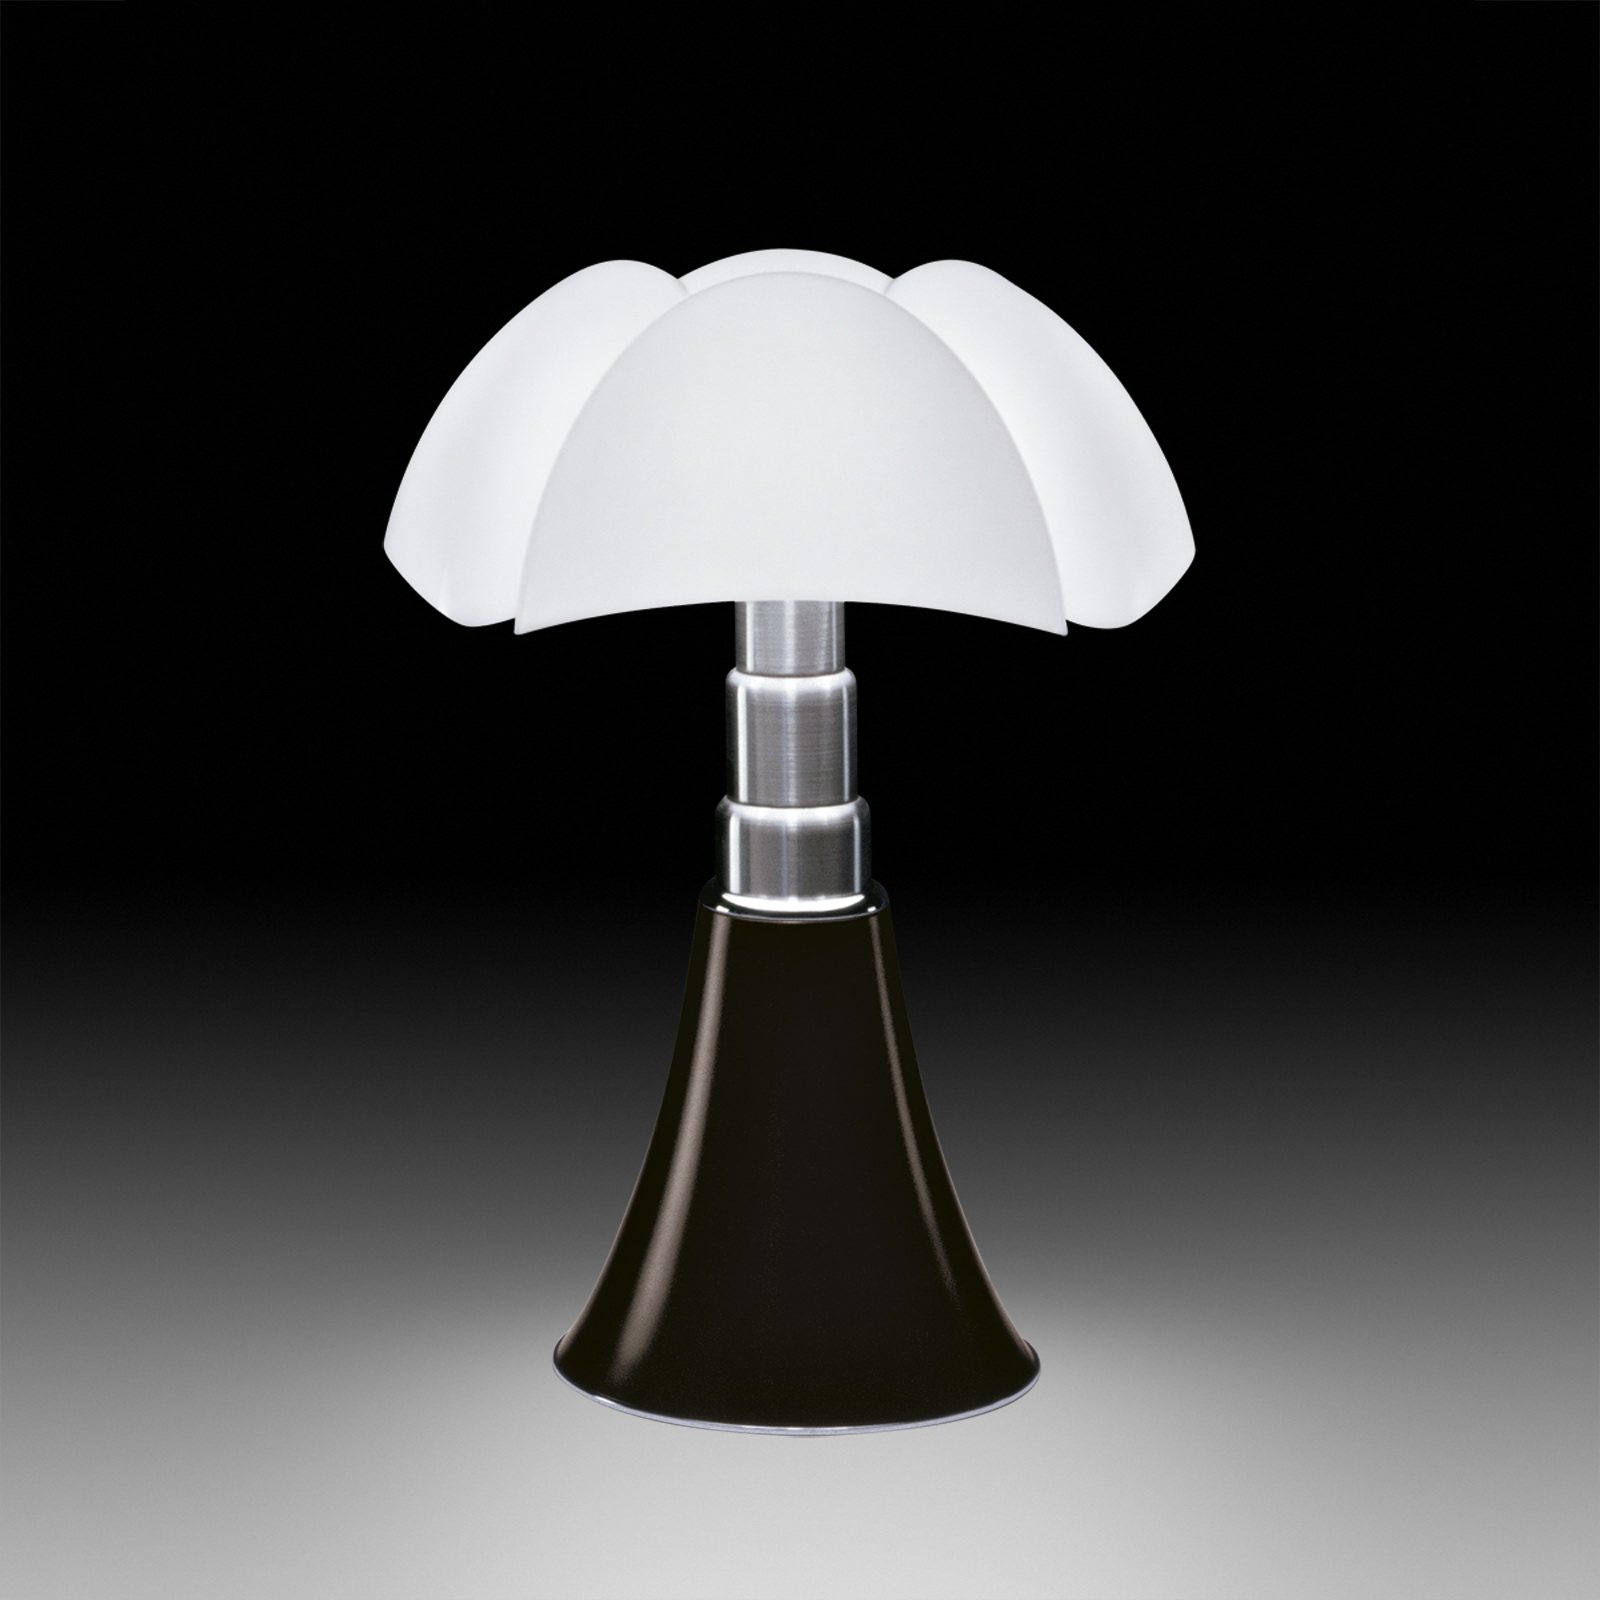 timeless design pipistrello table lamp by gae aulenti for martinelli luce sohomod blog